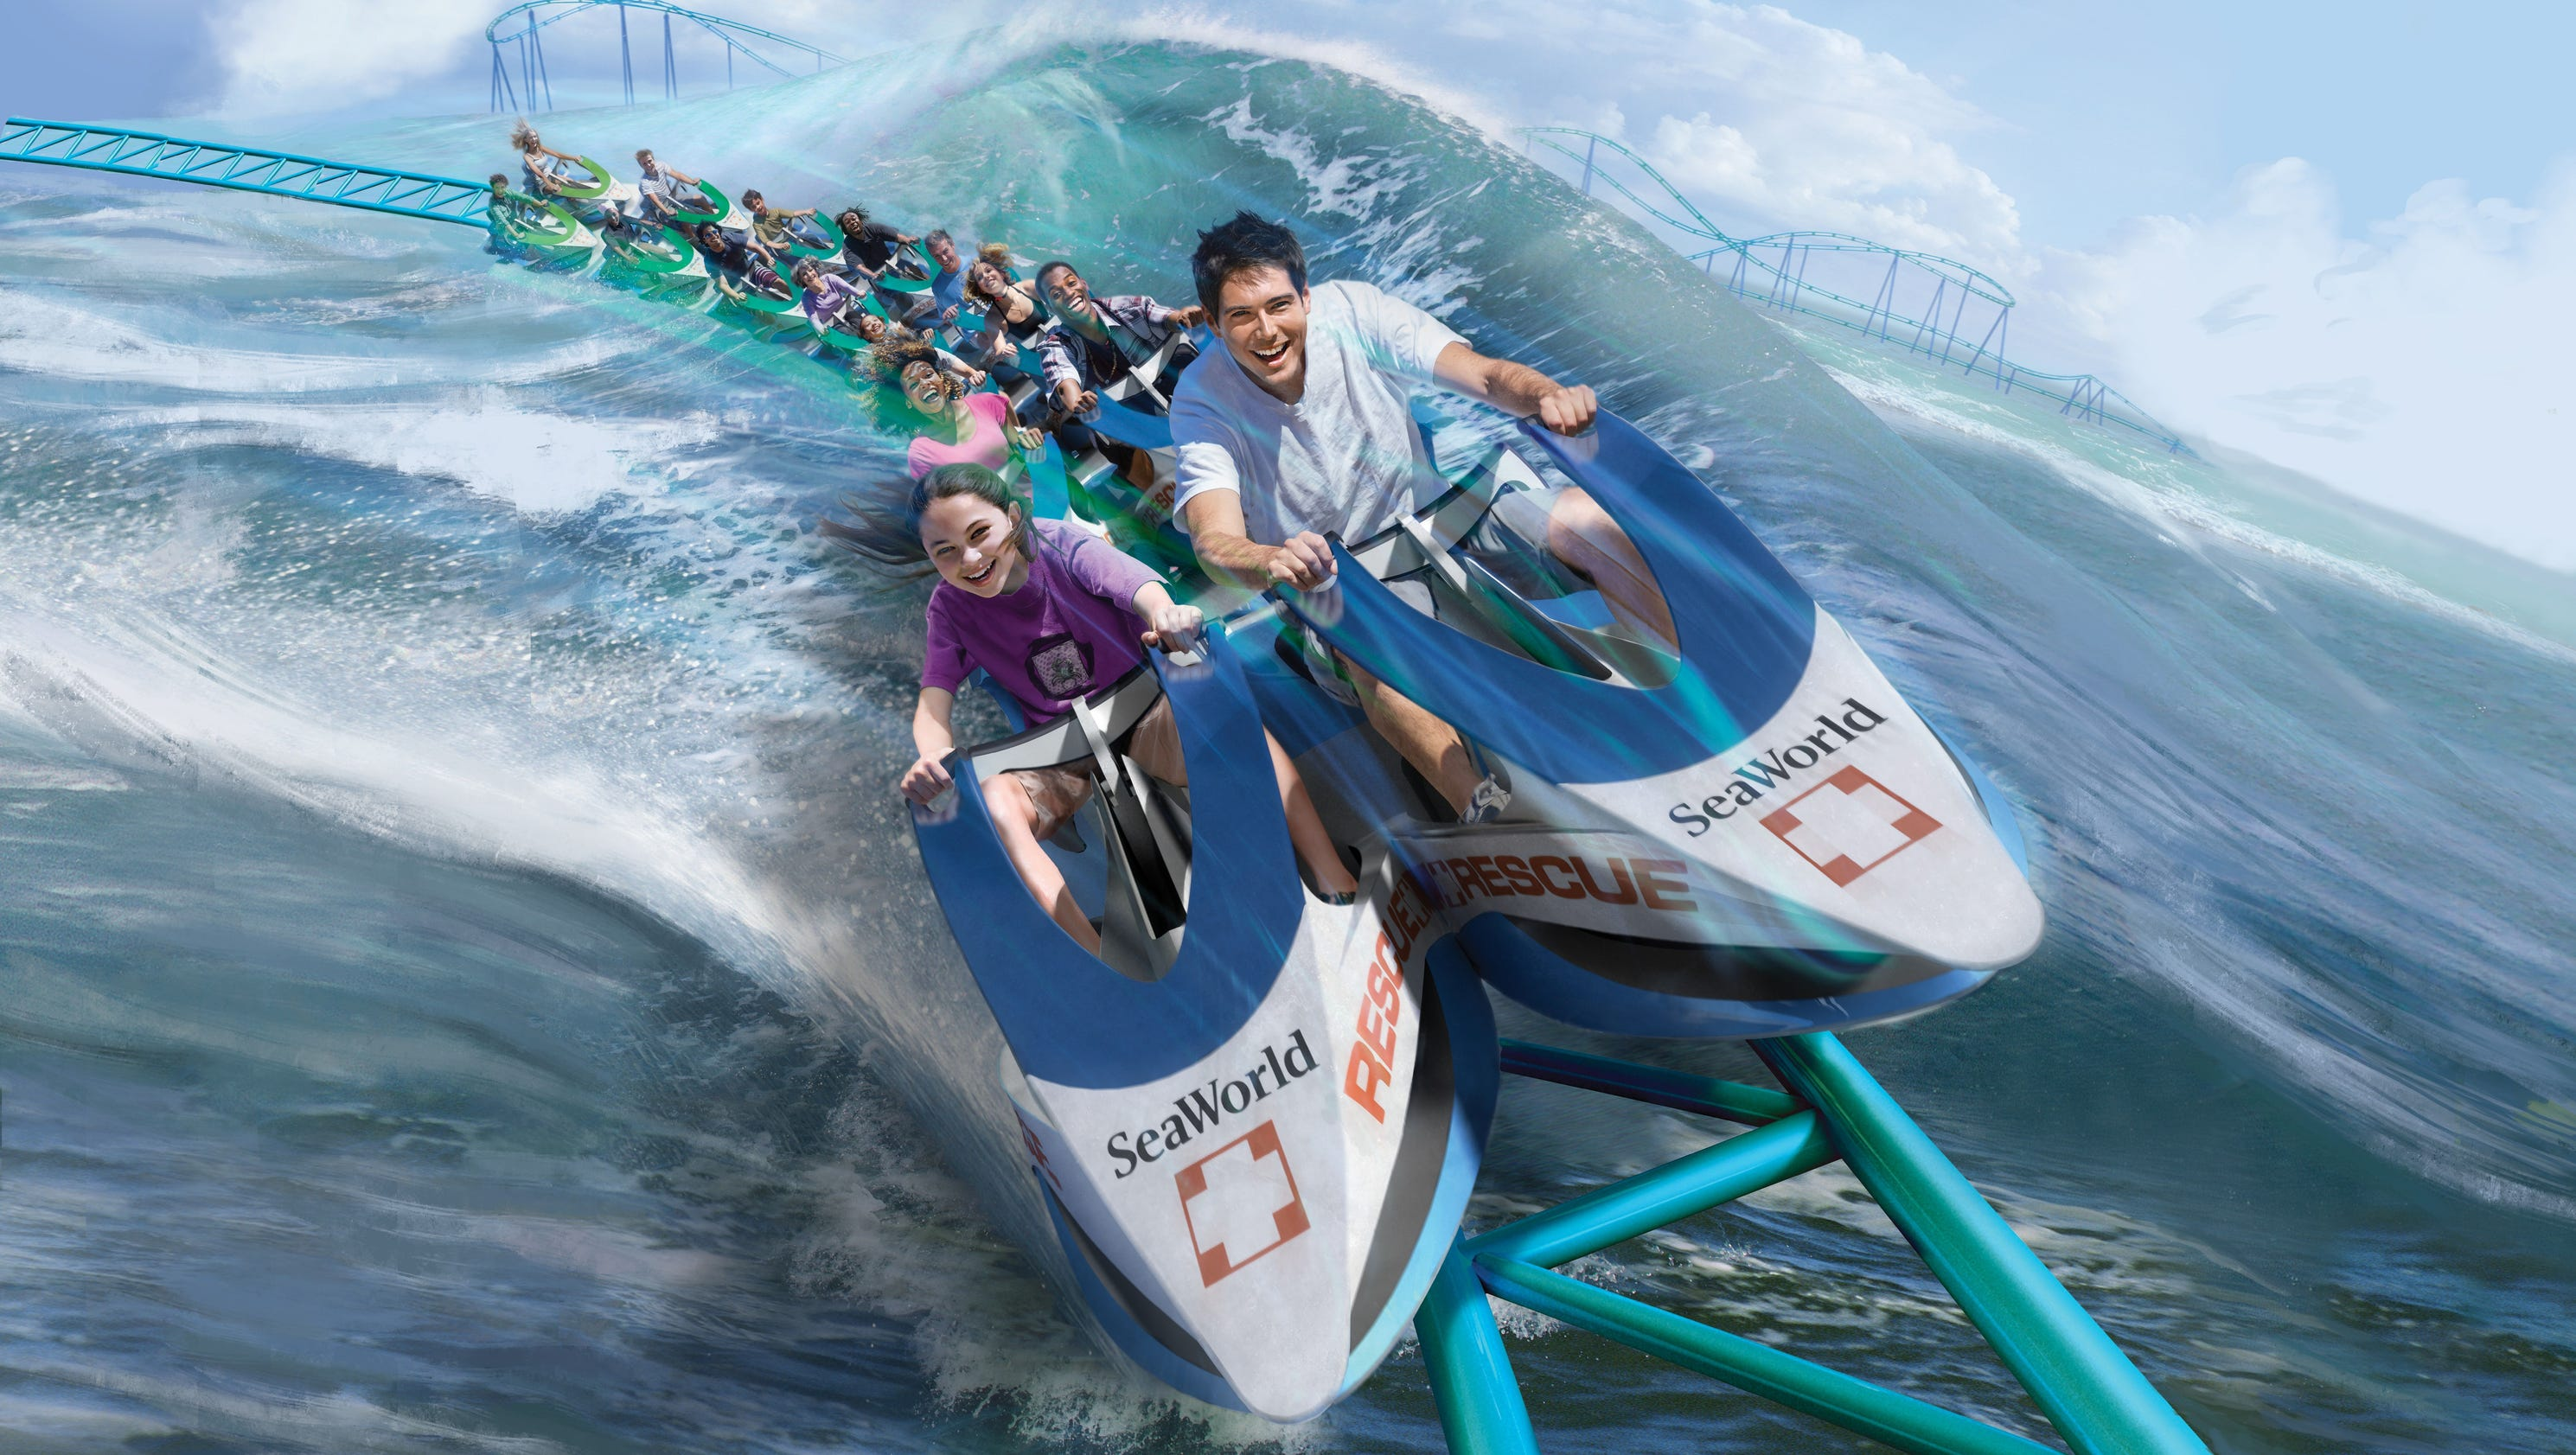 Seaworld In 2017 New Coasters Rides And Shows To Turn